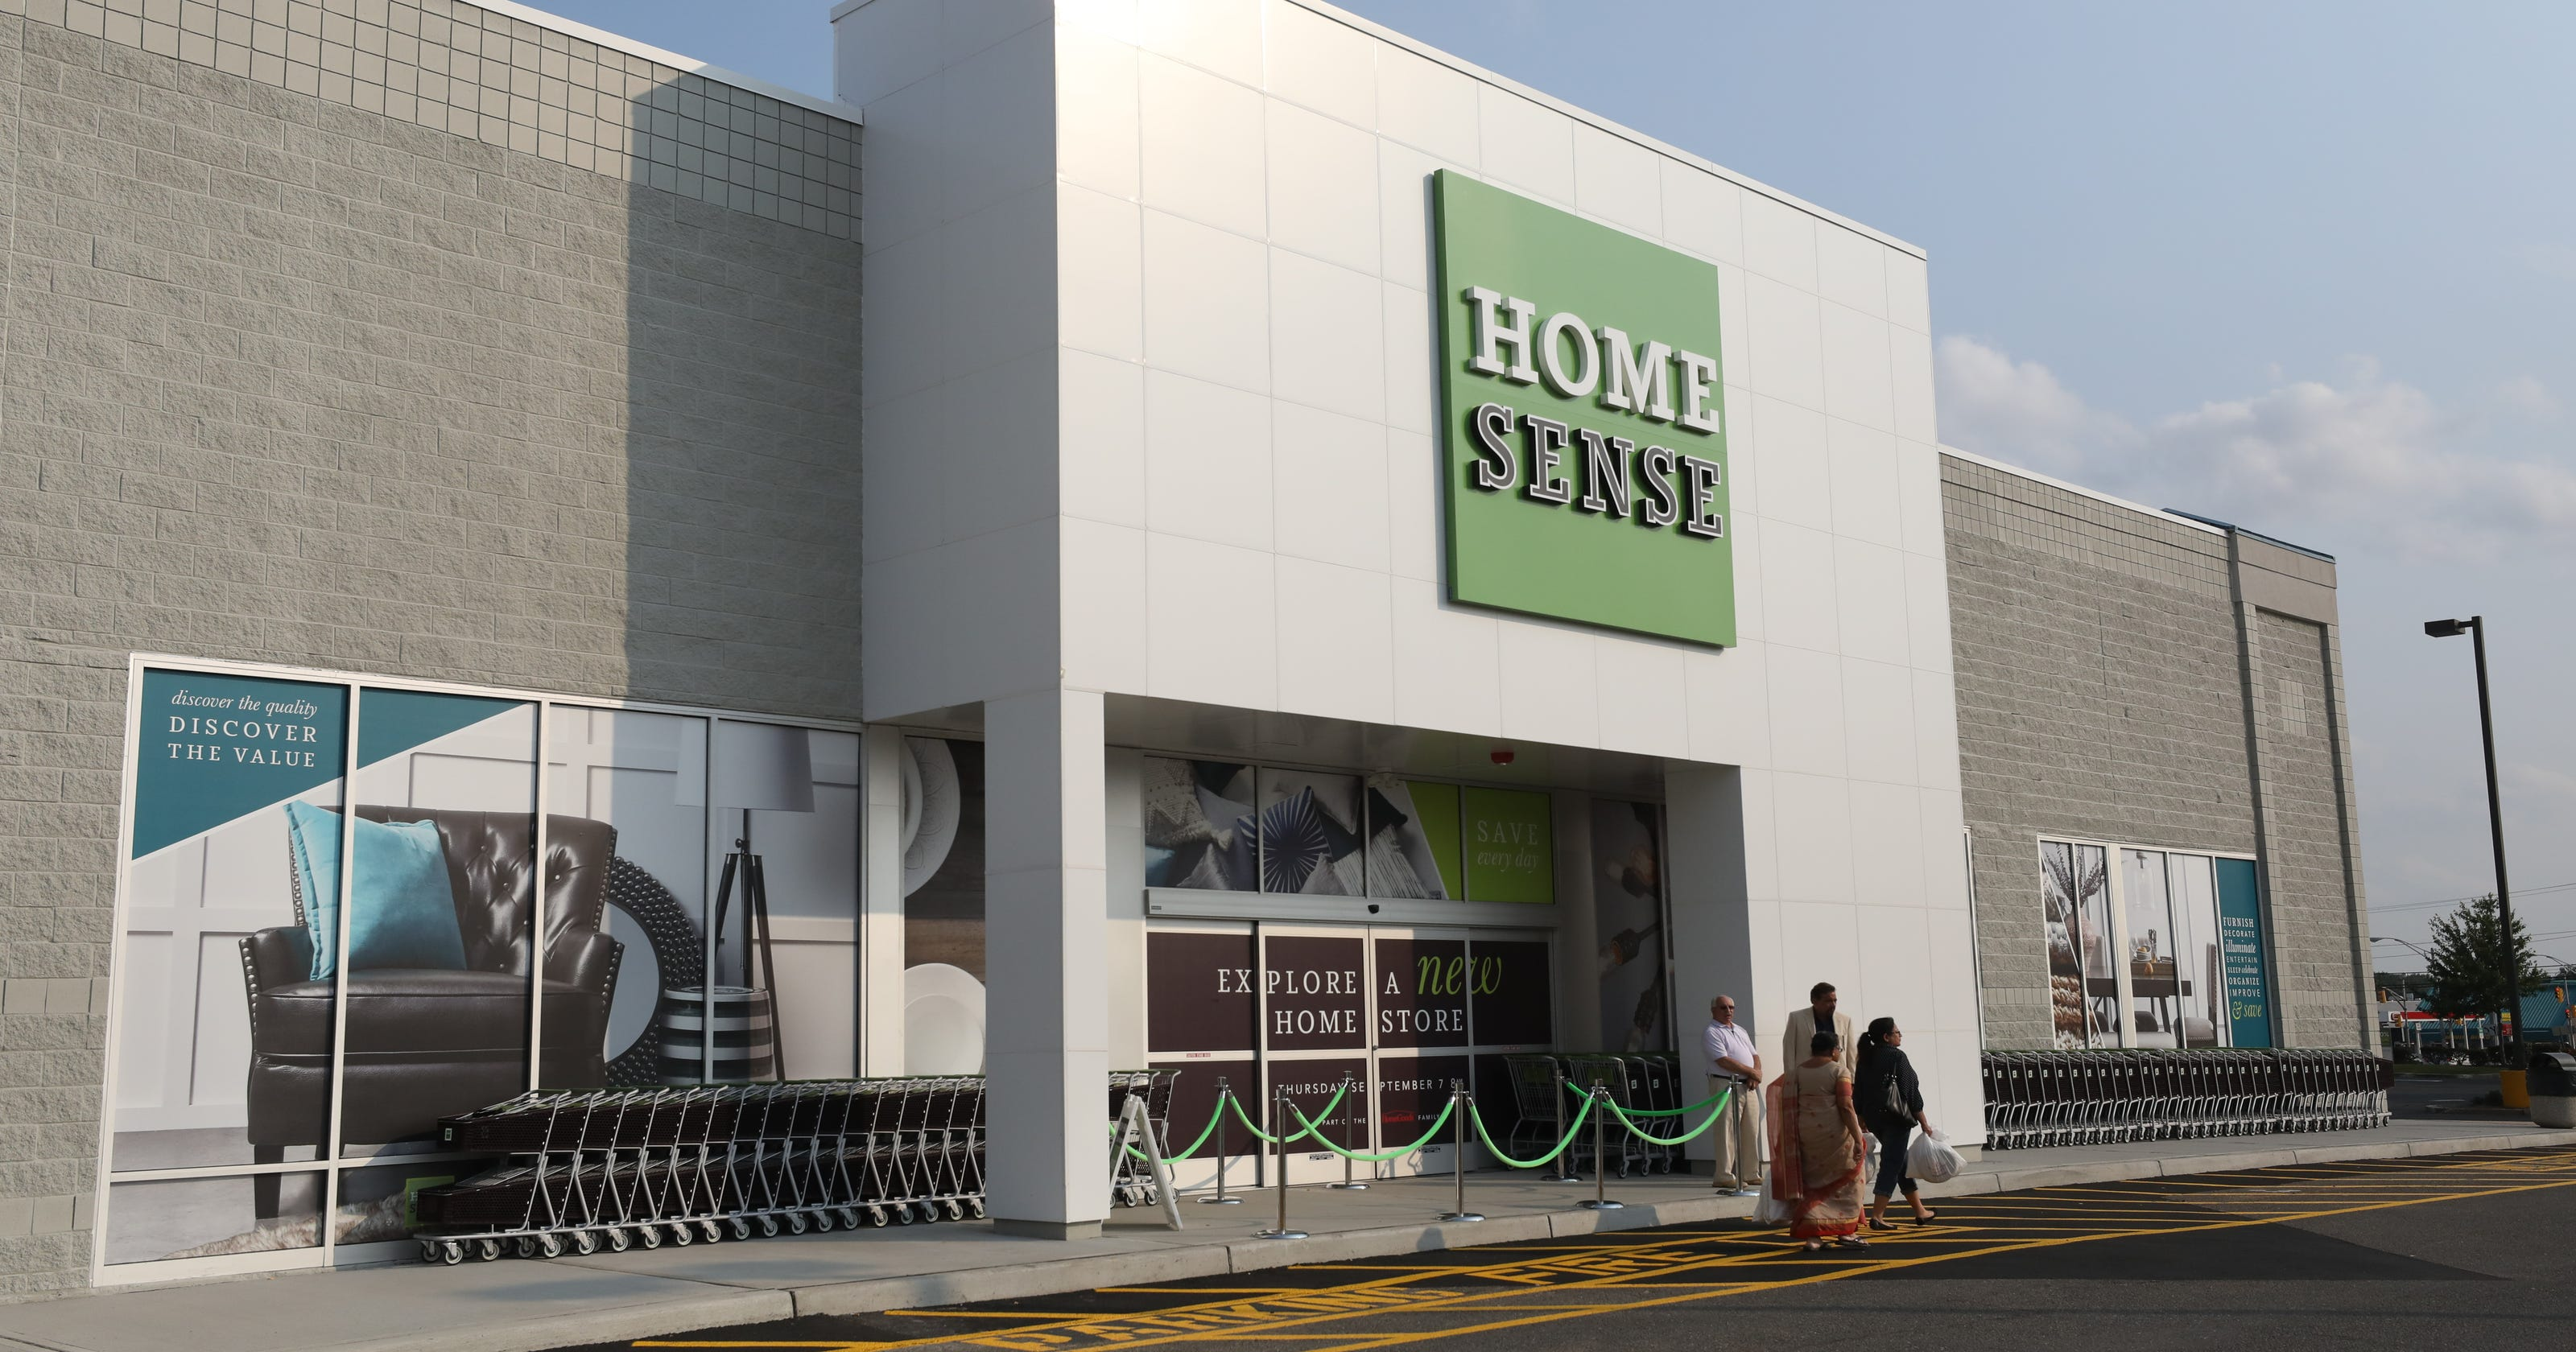 Homesense Discount Decor Sibling Of Homegoods Coming To Paramus Nj